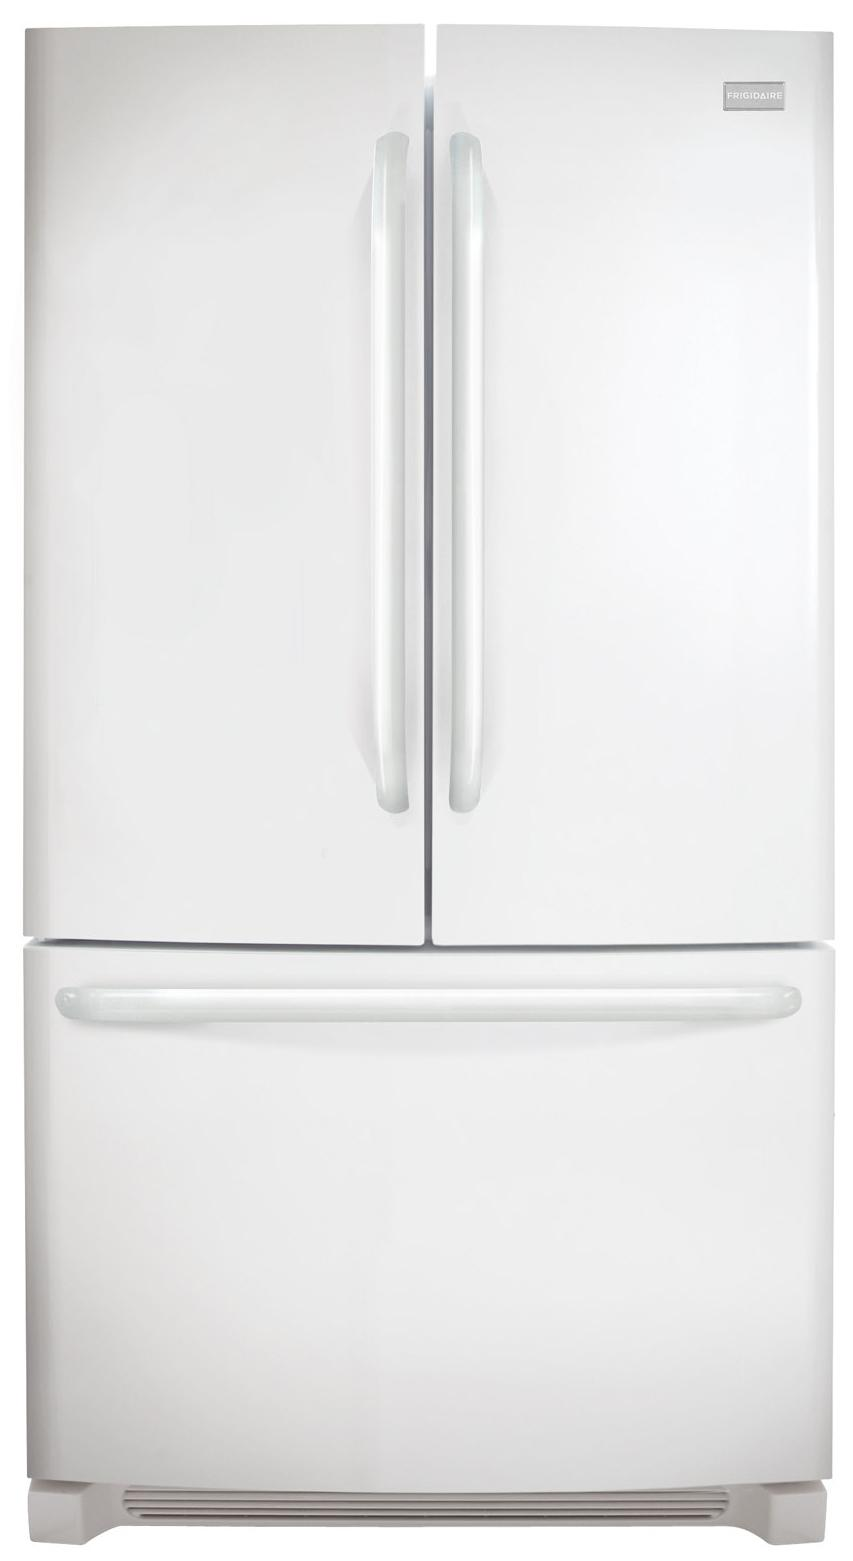 Frigidaire French Door Refrigerators 27.8 Cu. Ft. French Door Refrigerator - Item Number: FFHN2740PP